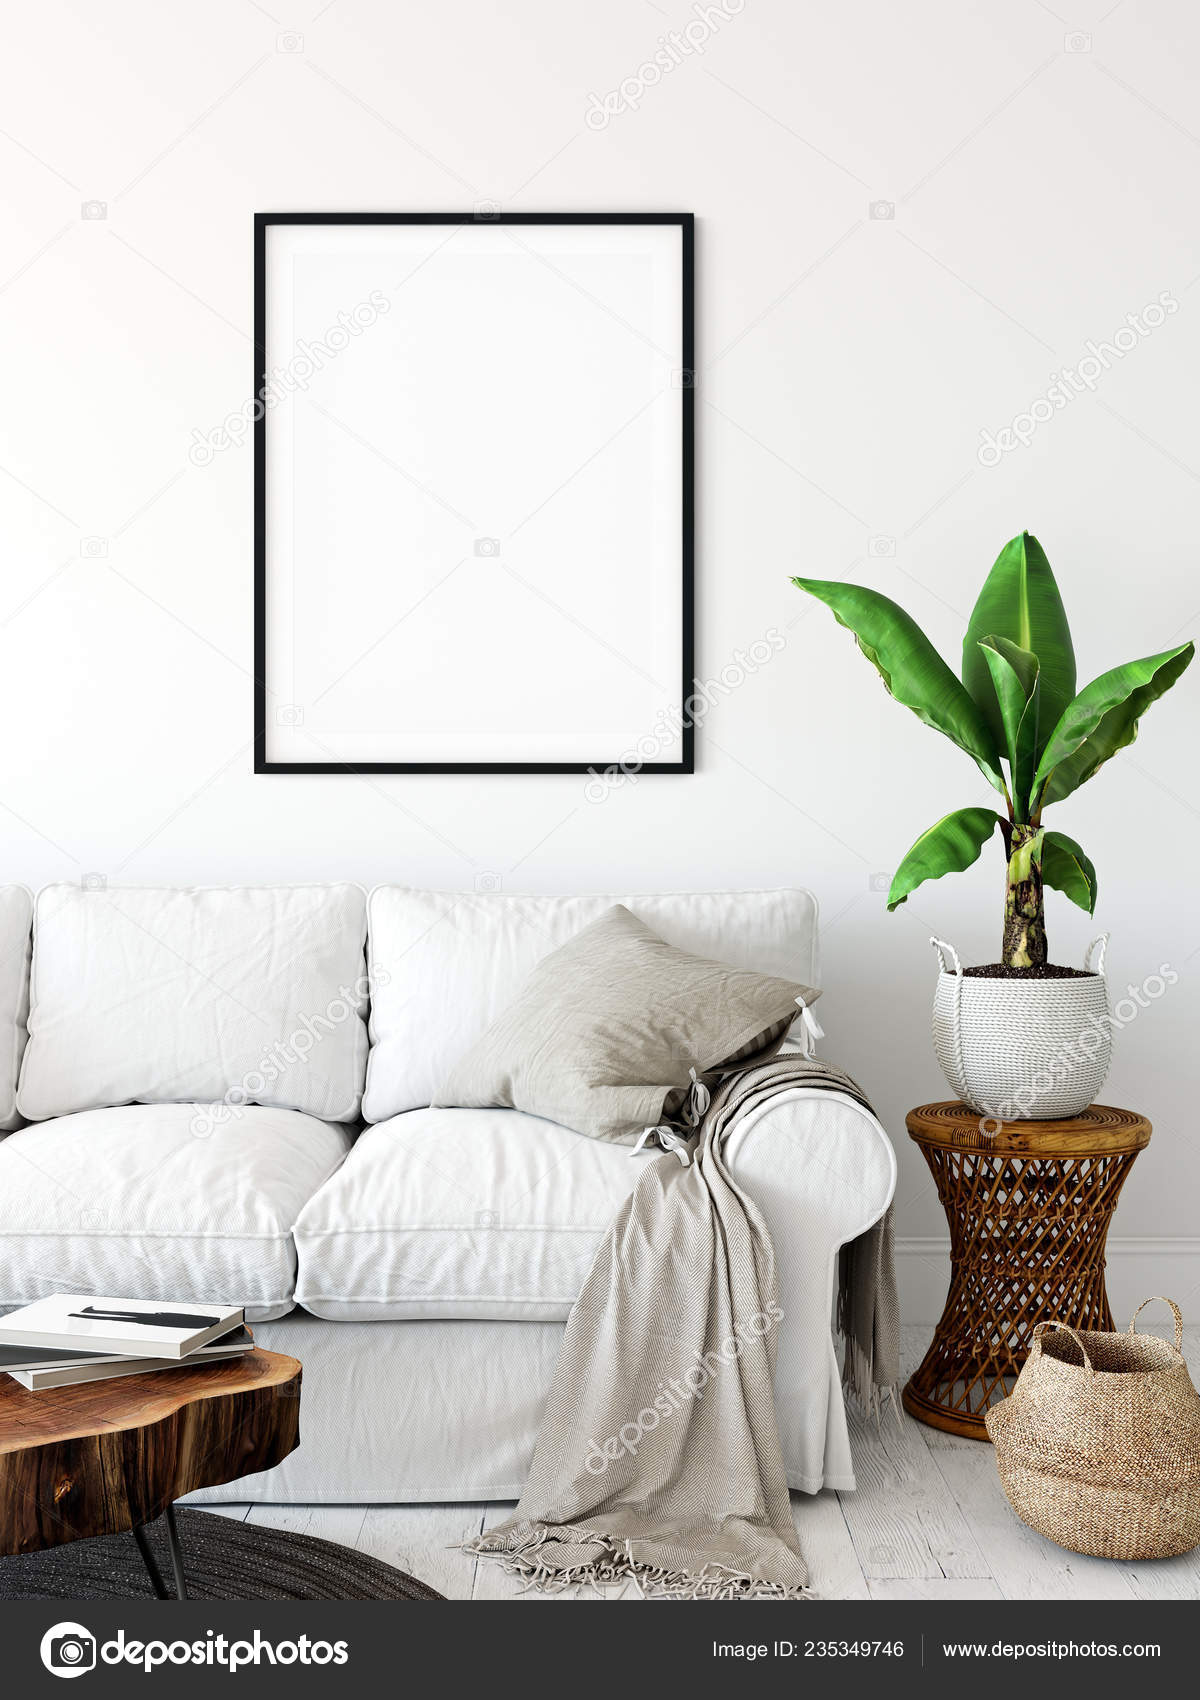 Frame Mockup Living Room Interior Wall Mockup Wall Art Rendering Stock Photo C Yuri U 235349746